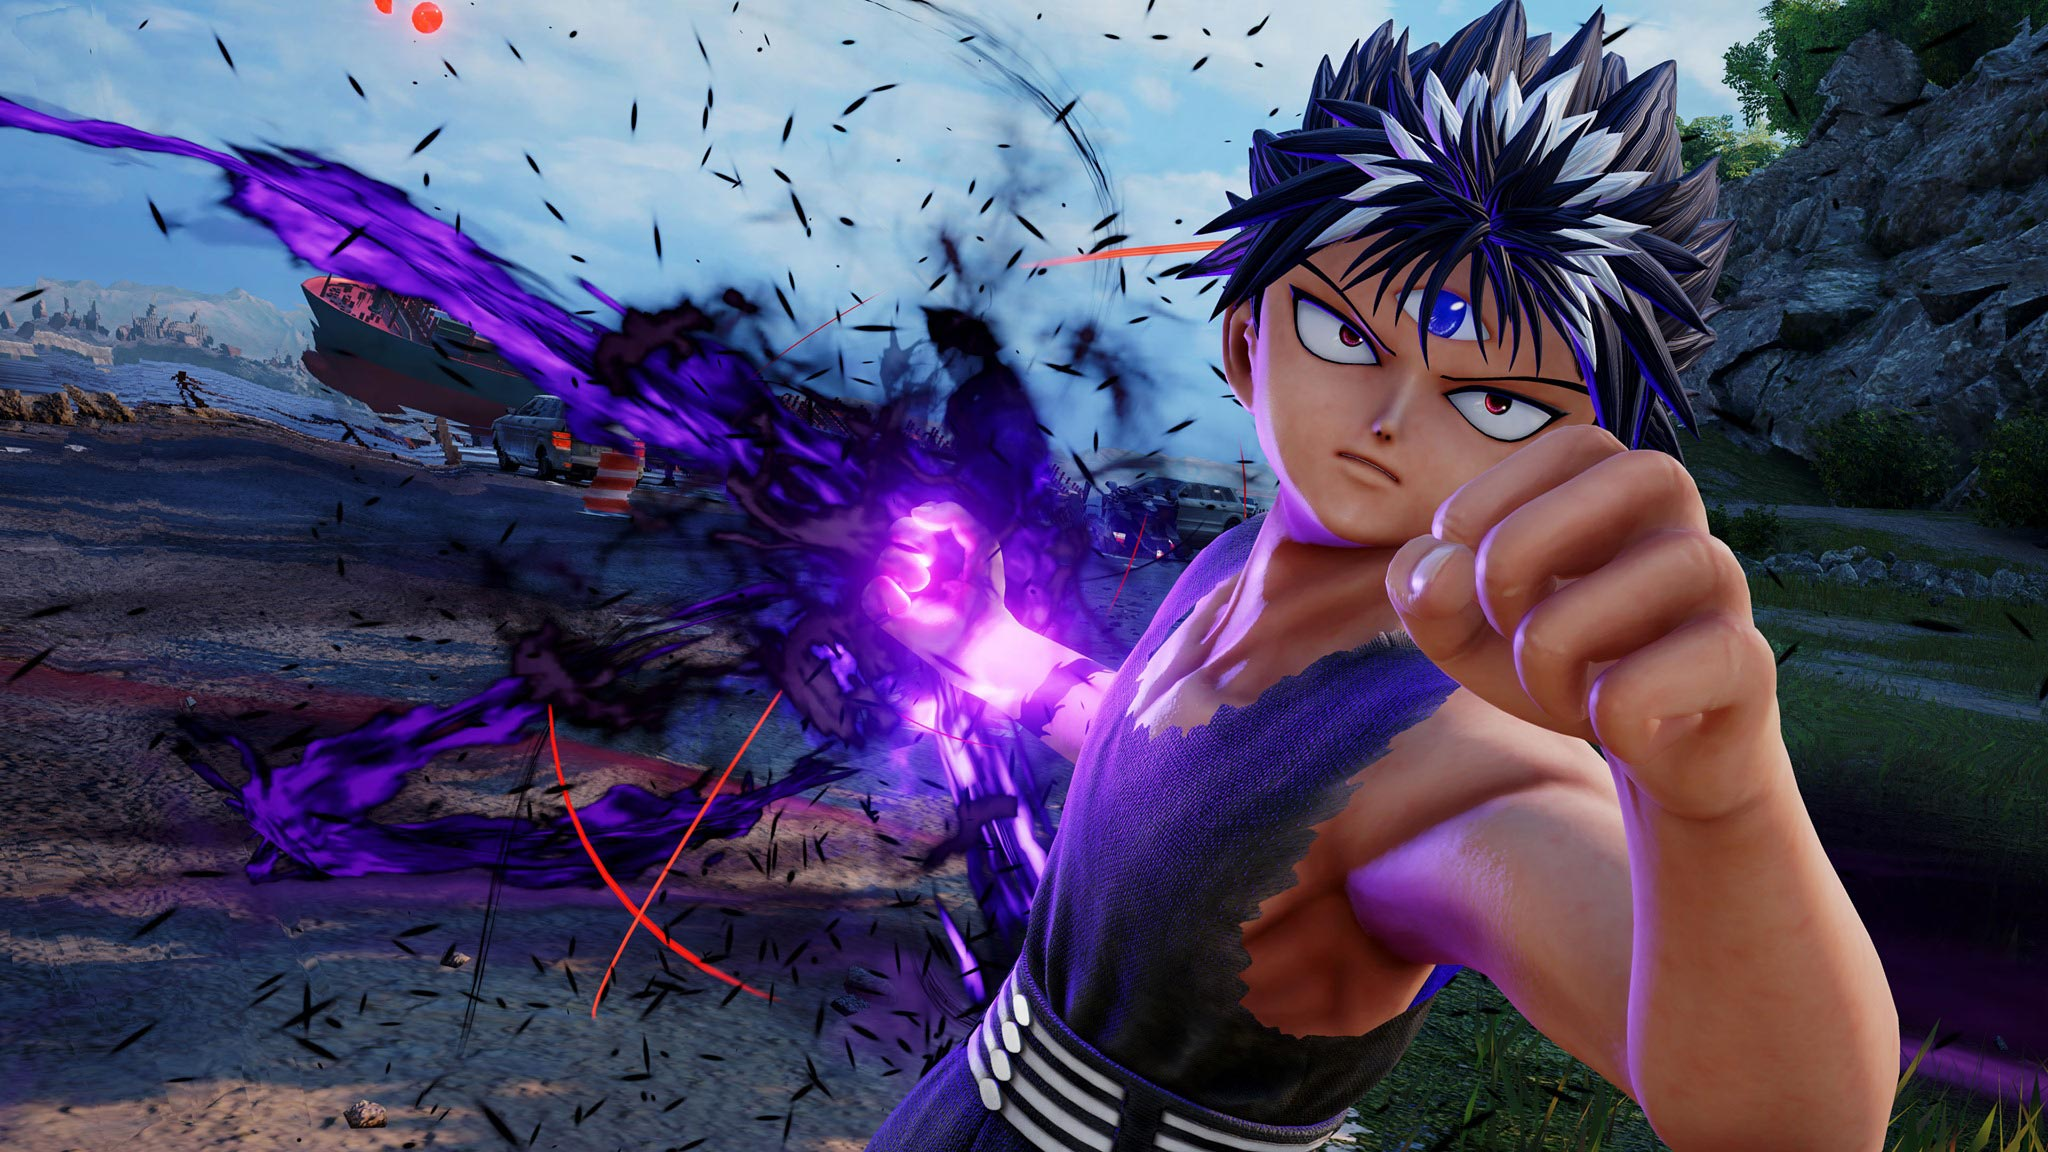 Jump Force Hiei screens 1 out of 4 image gallery